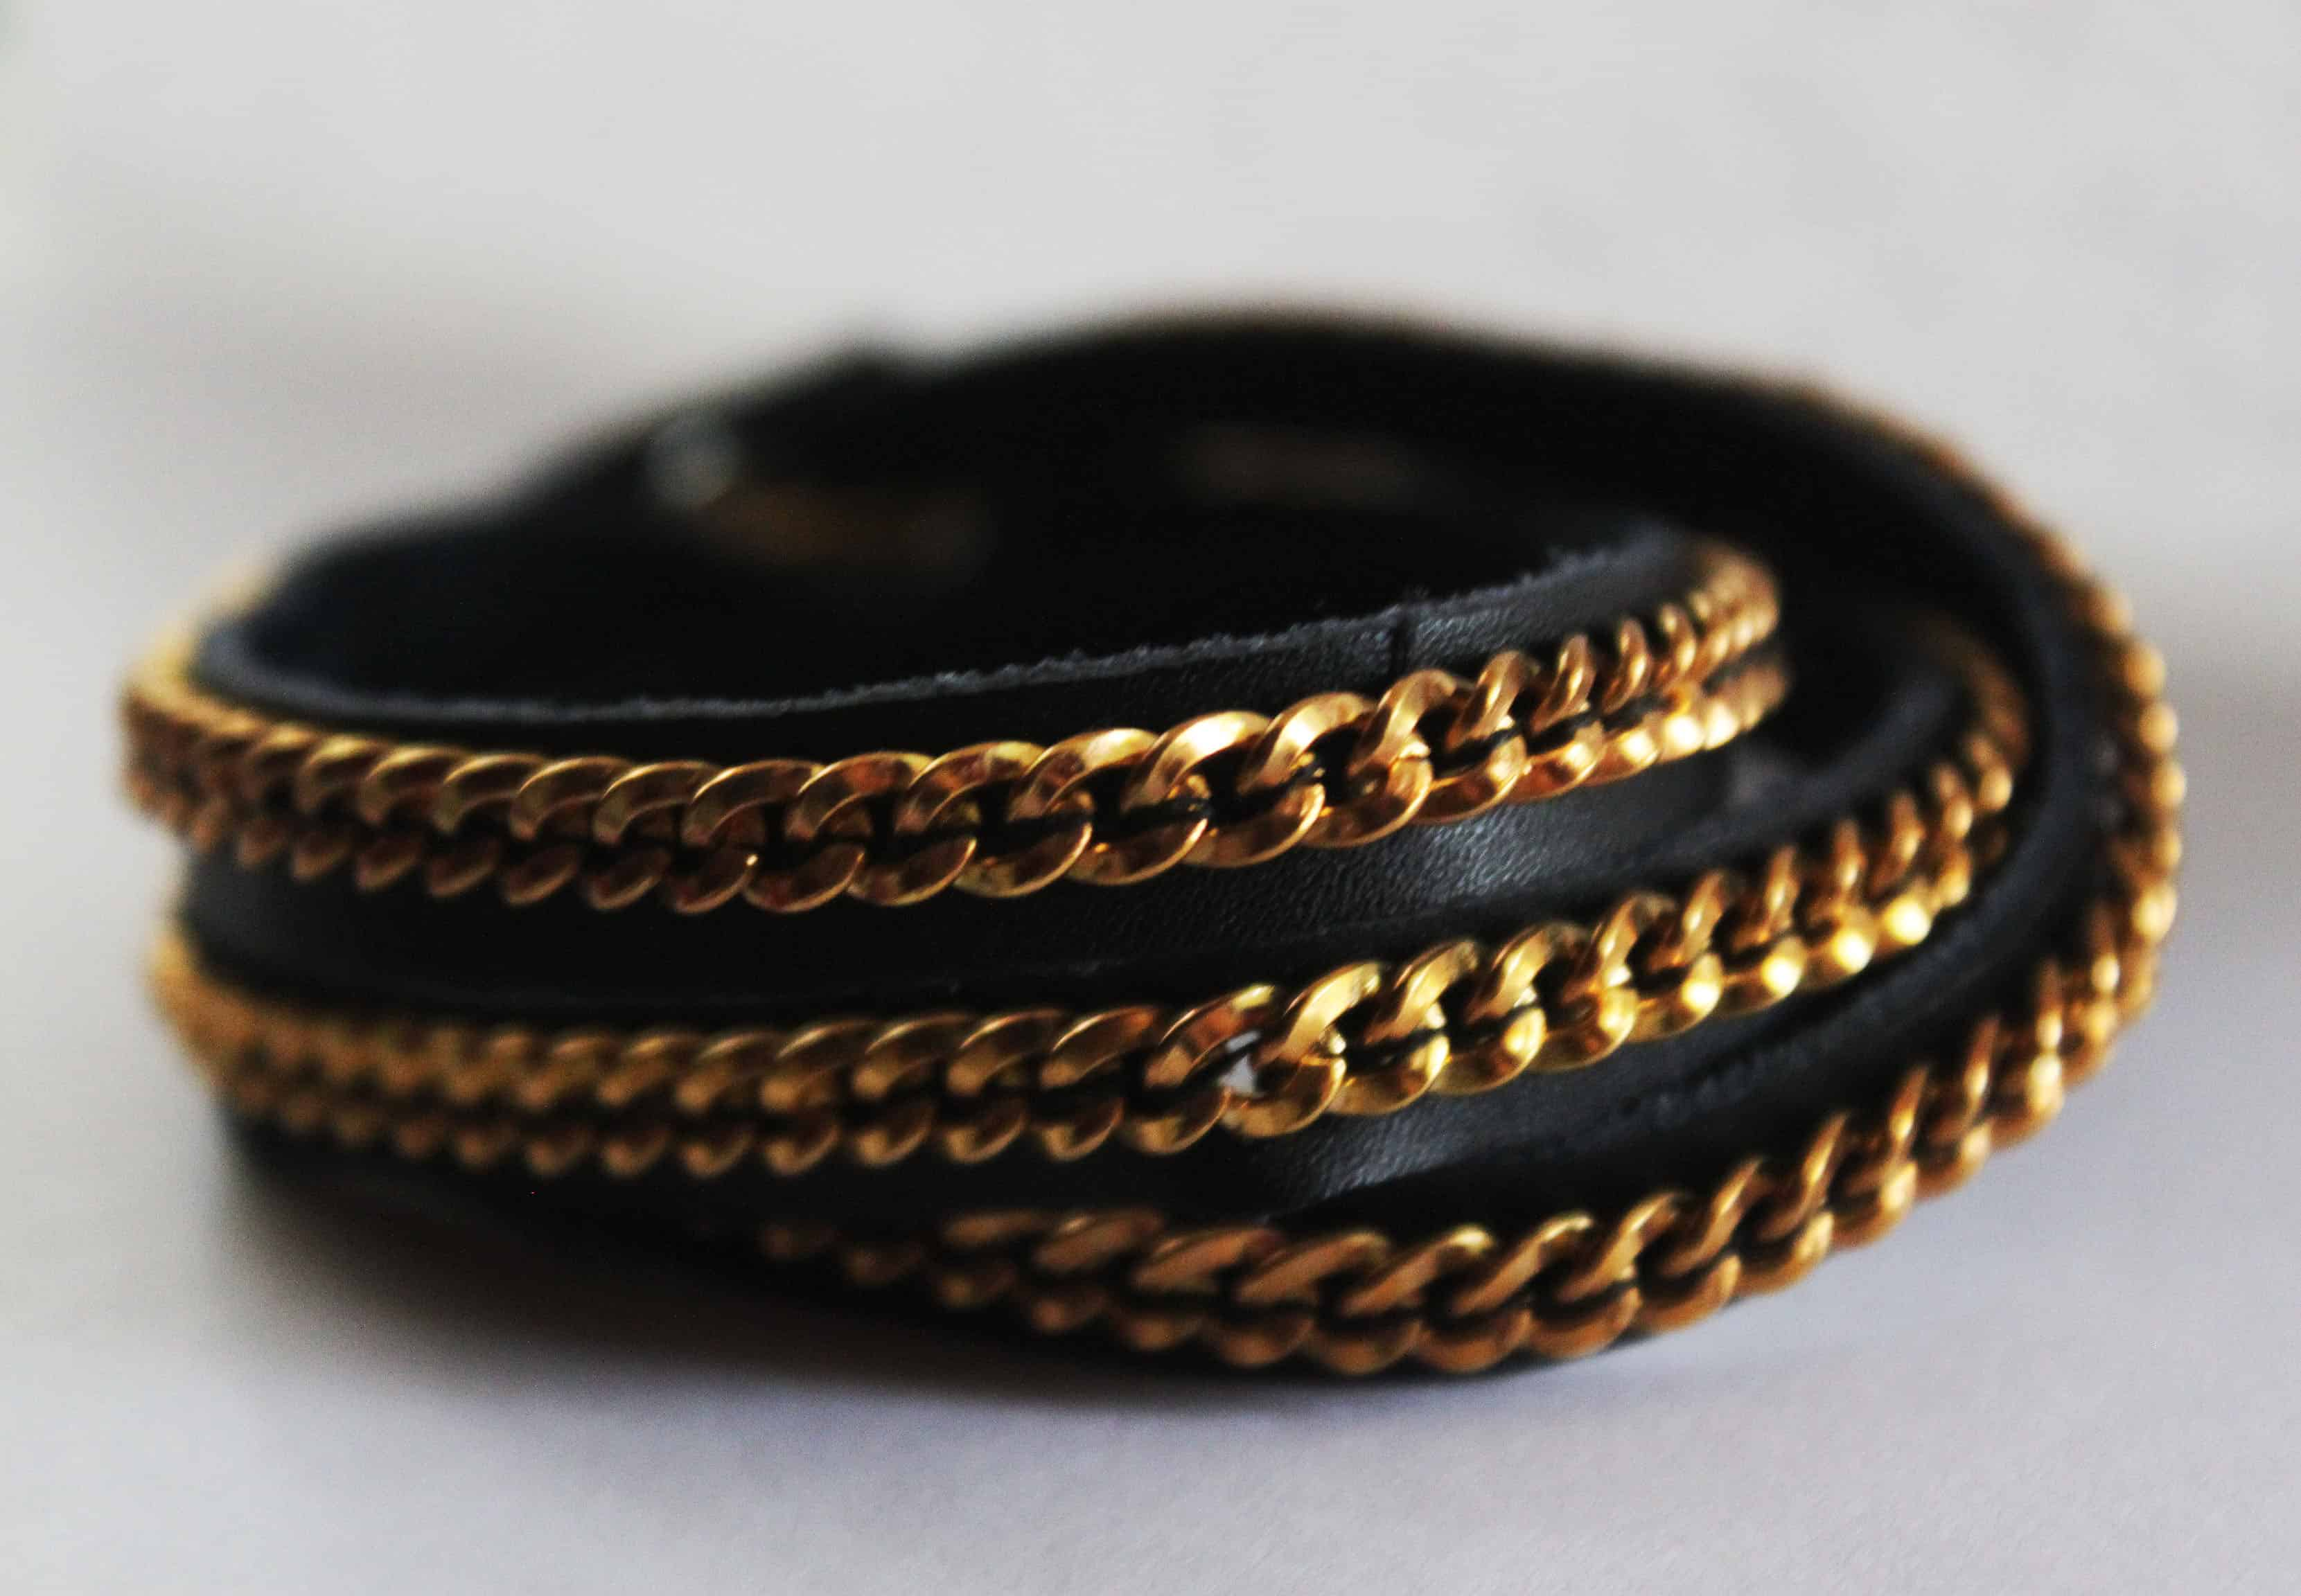 Chain on leather bracelet